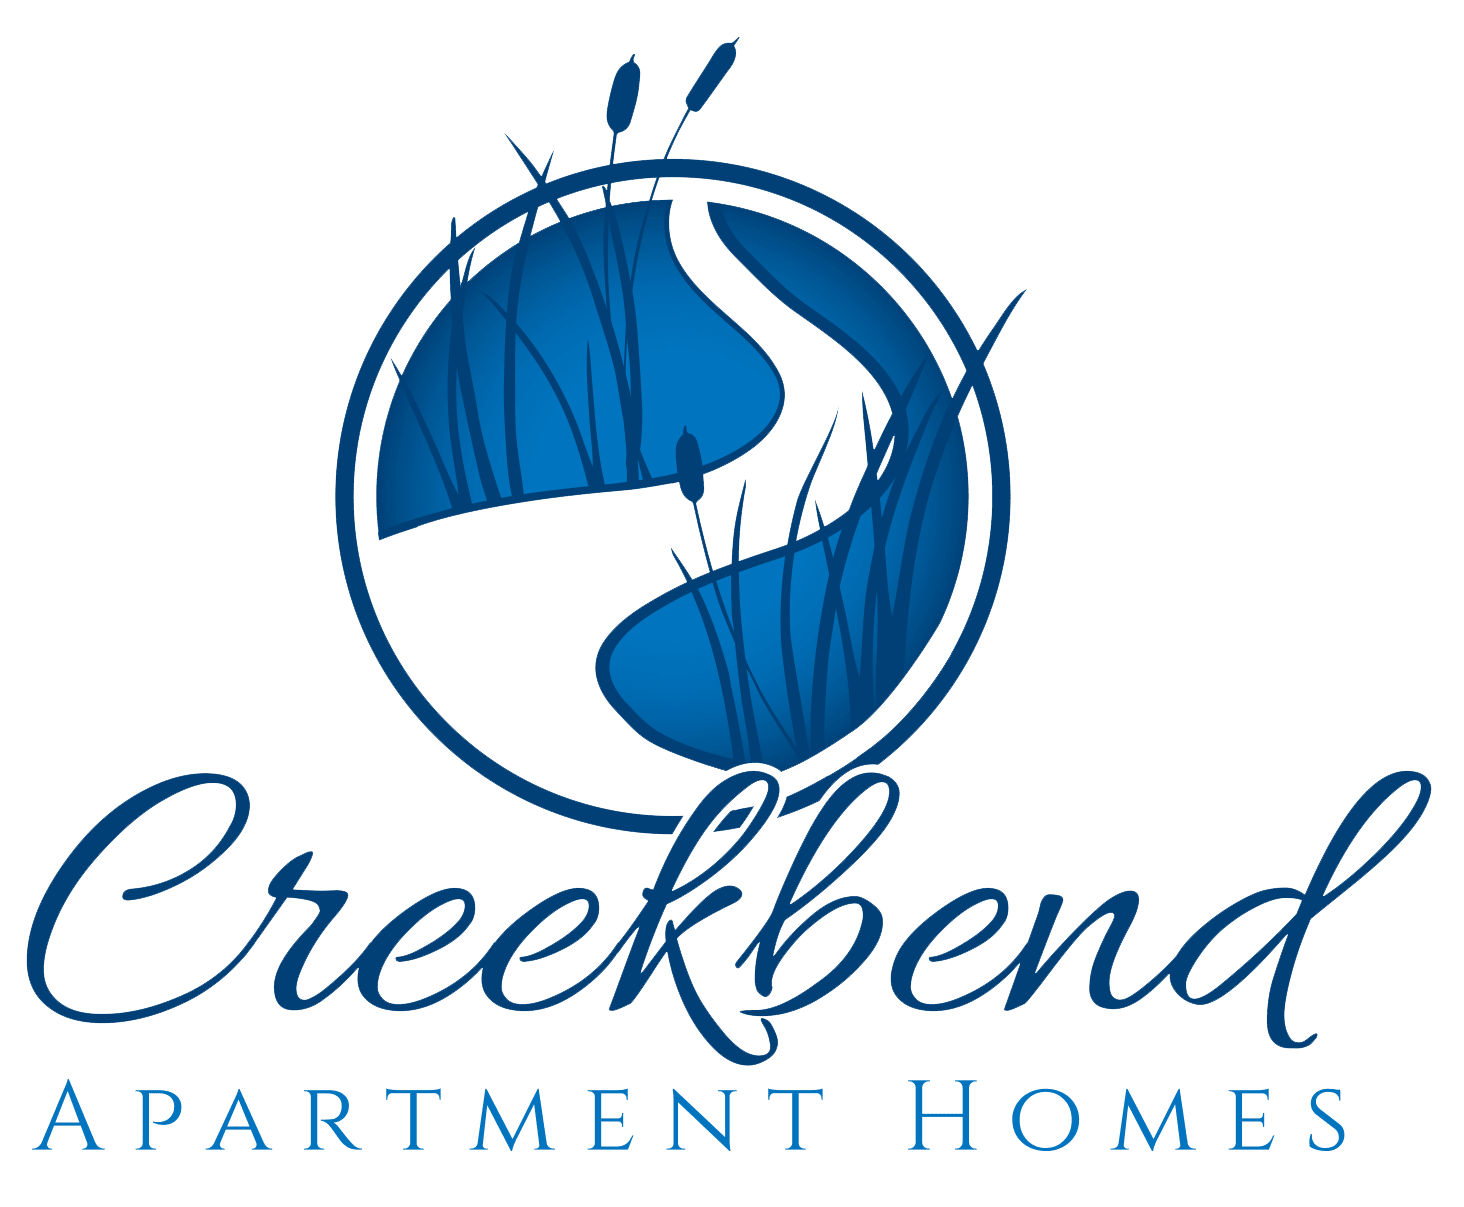 Creekbend Apartments